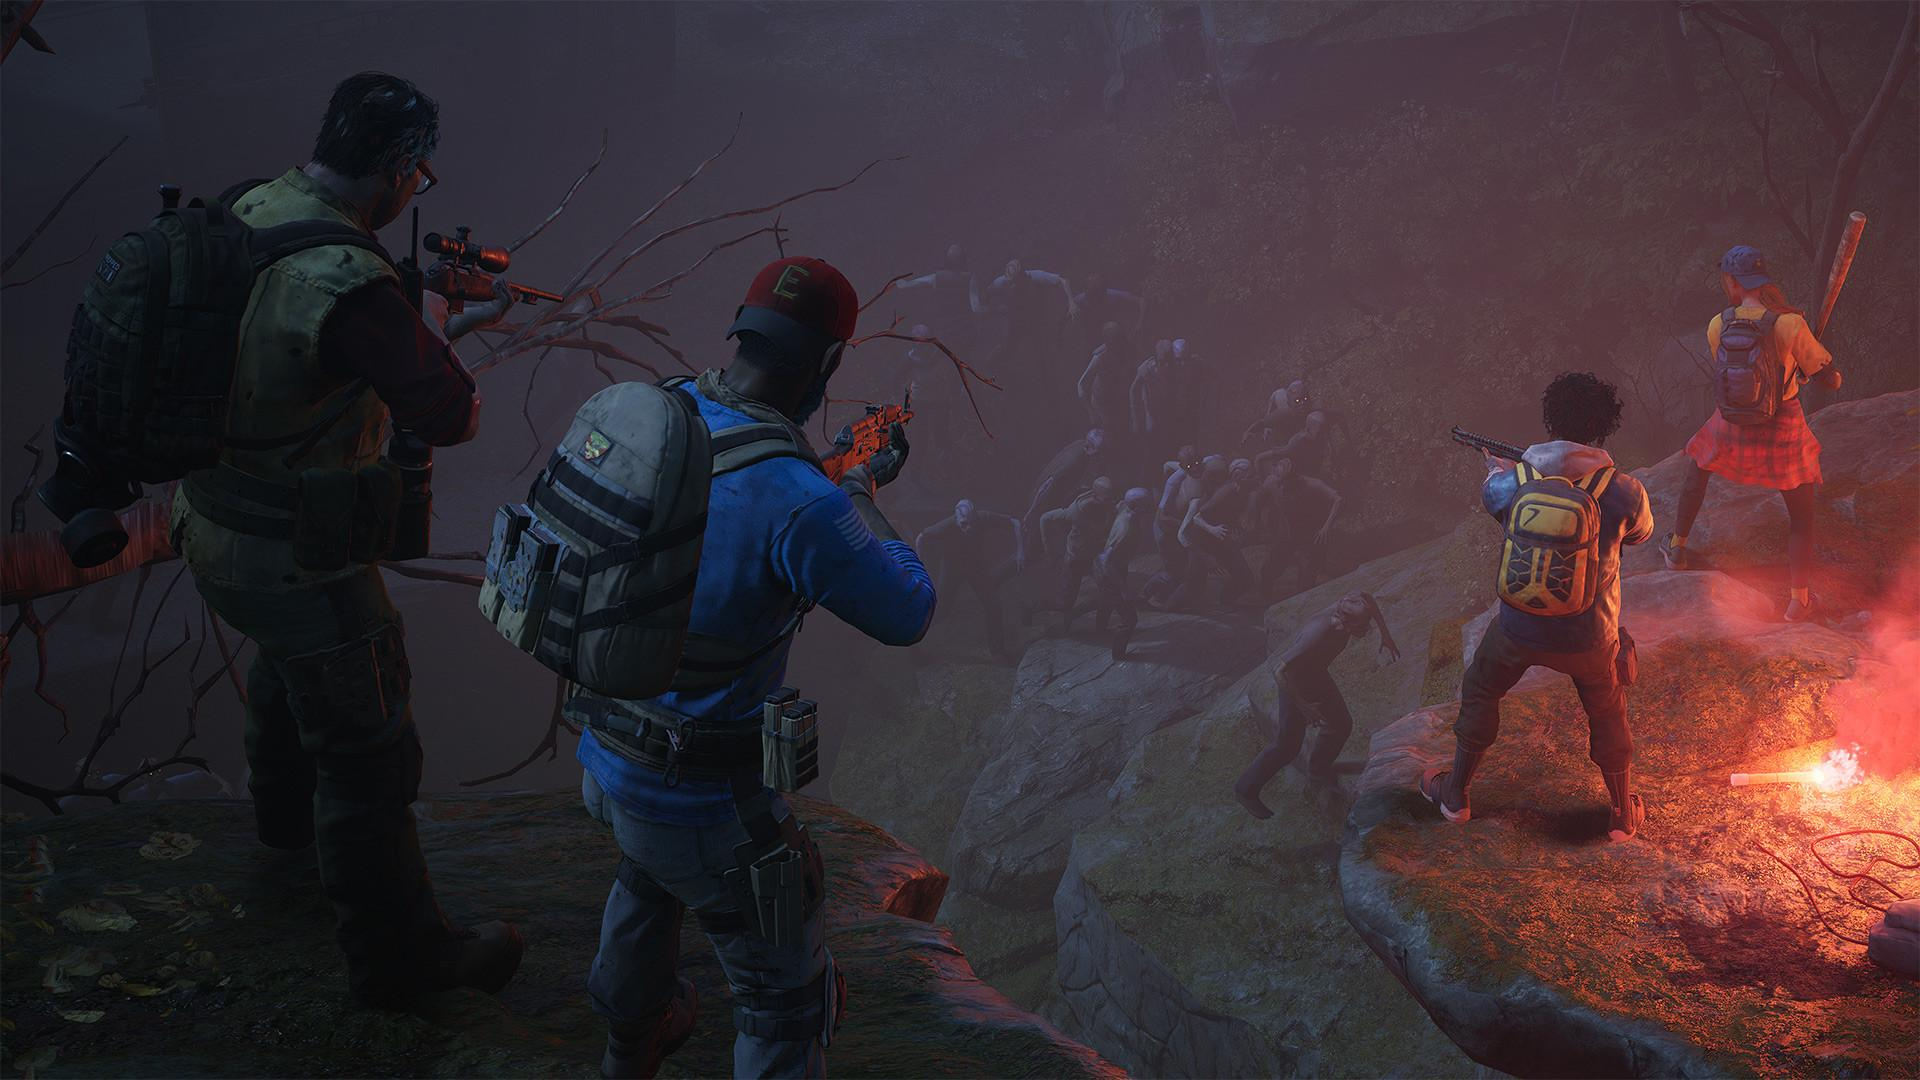 Back 4 Blood pits a squad of four players against an endless horde of parasite-infested zombies called The Ridden